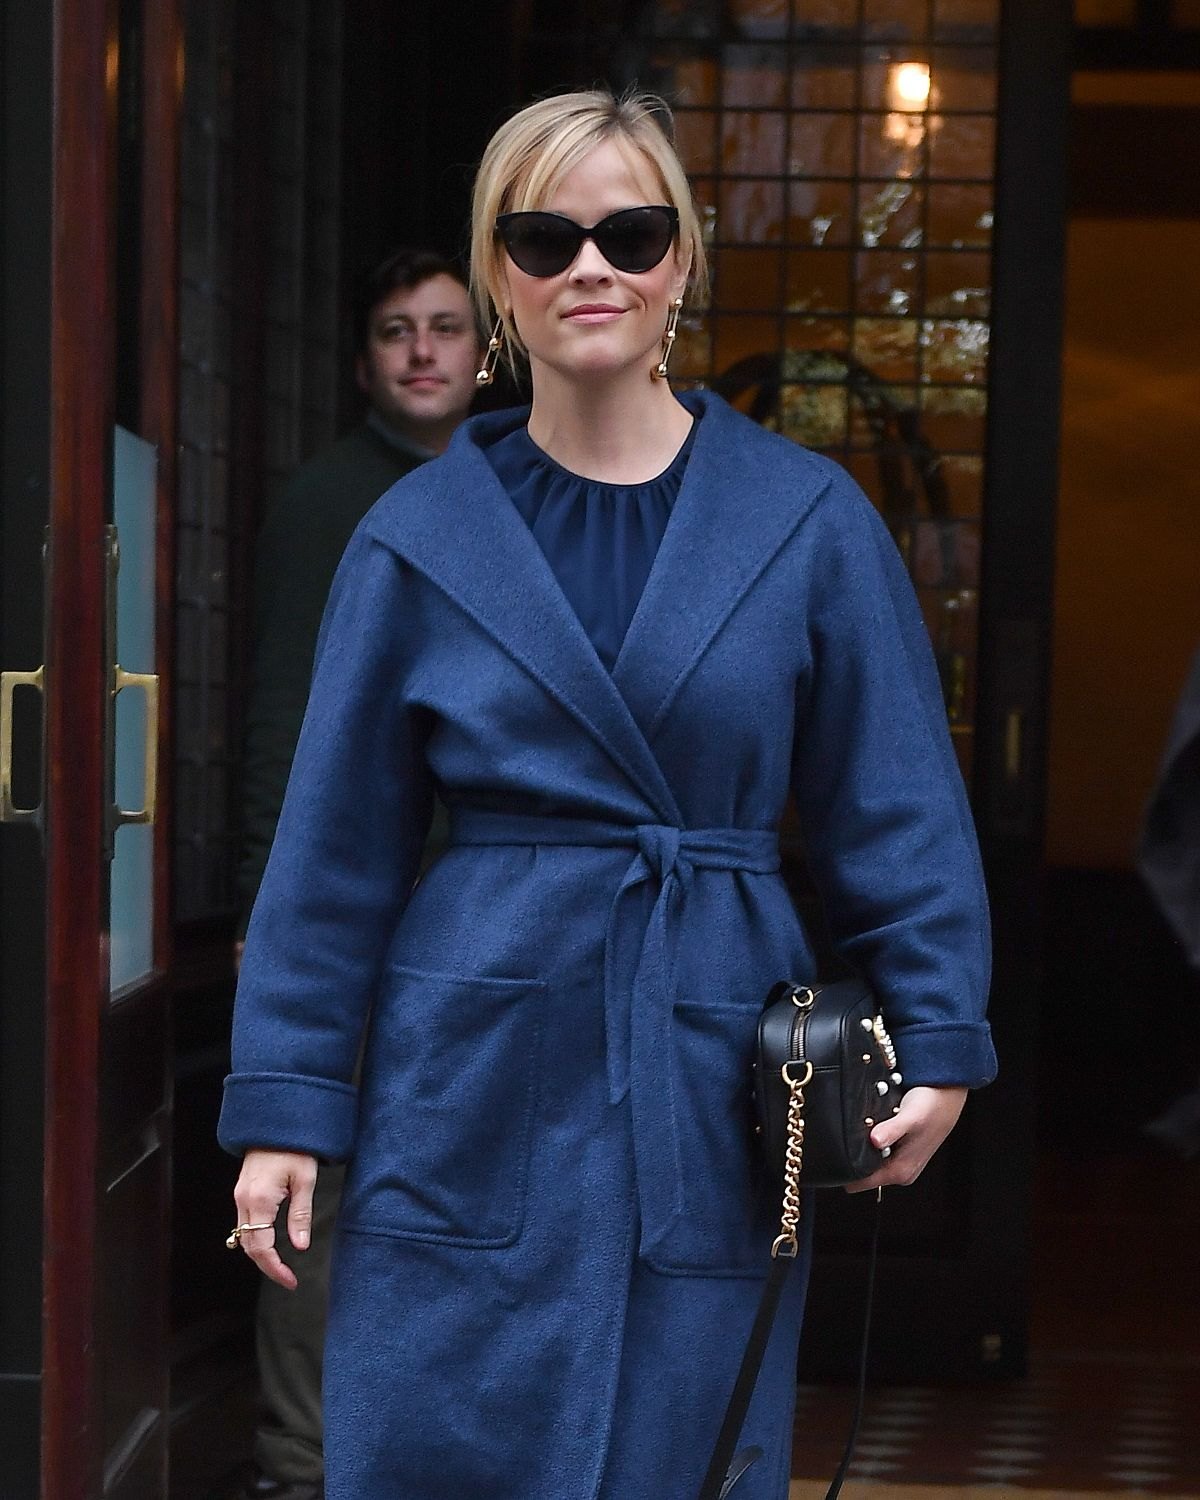 REESE WITHERSPOON in a Blue Coat Out in New York 04/21/2017